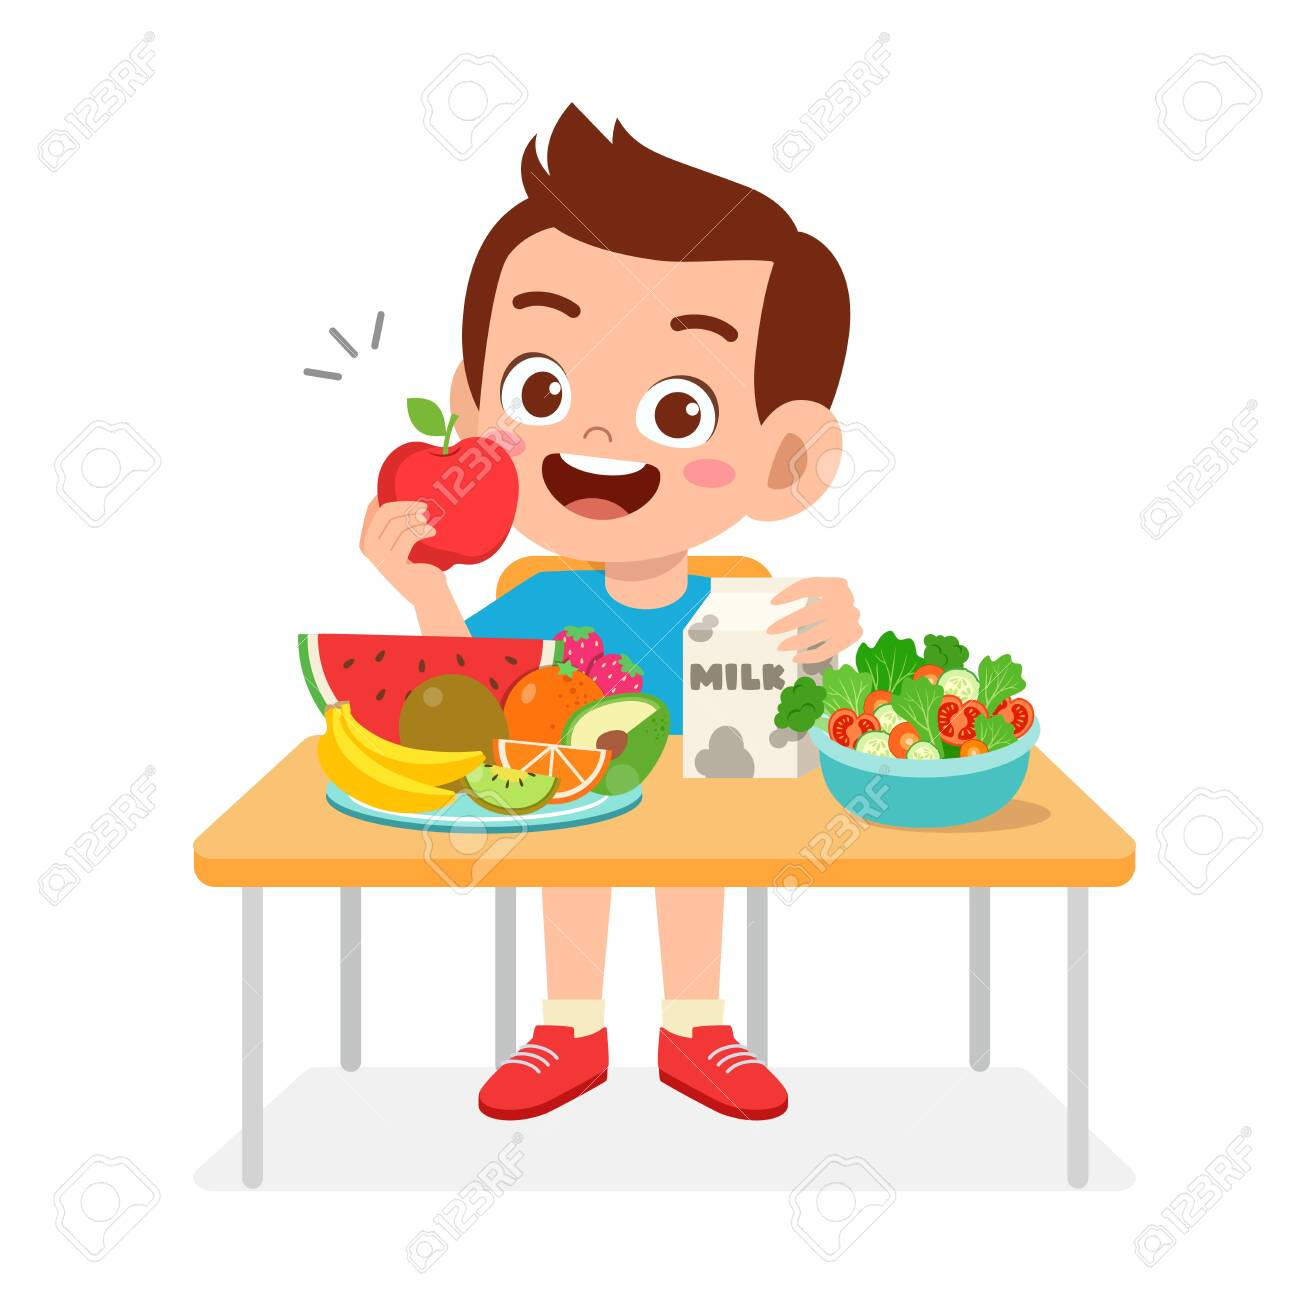 Happy Cute Kid Boy Eat Healthy Food Royalty Free Cliparts Vectors And Stock Illustration Image 138518059